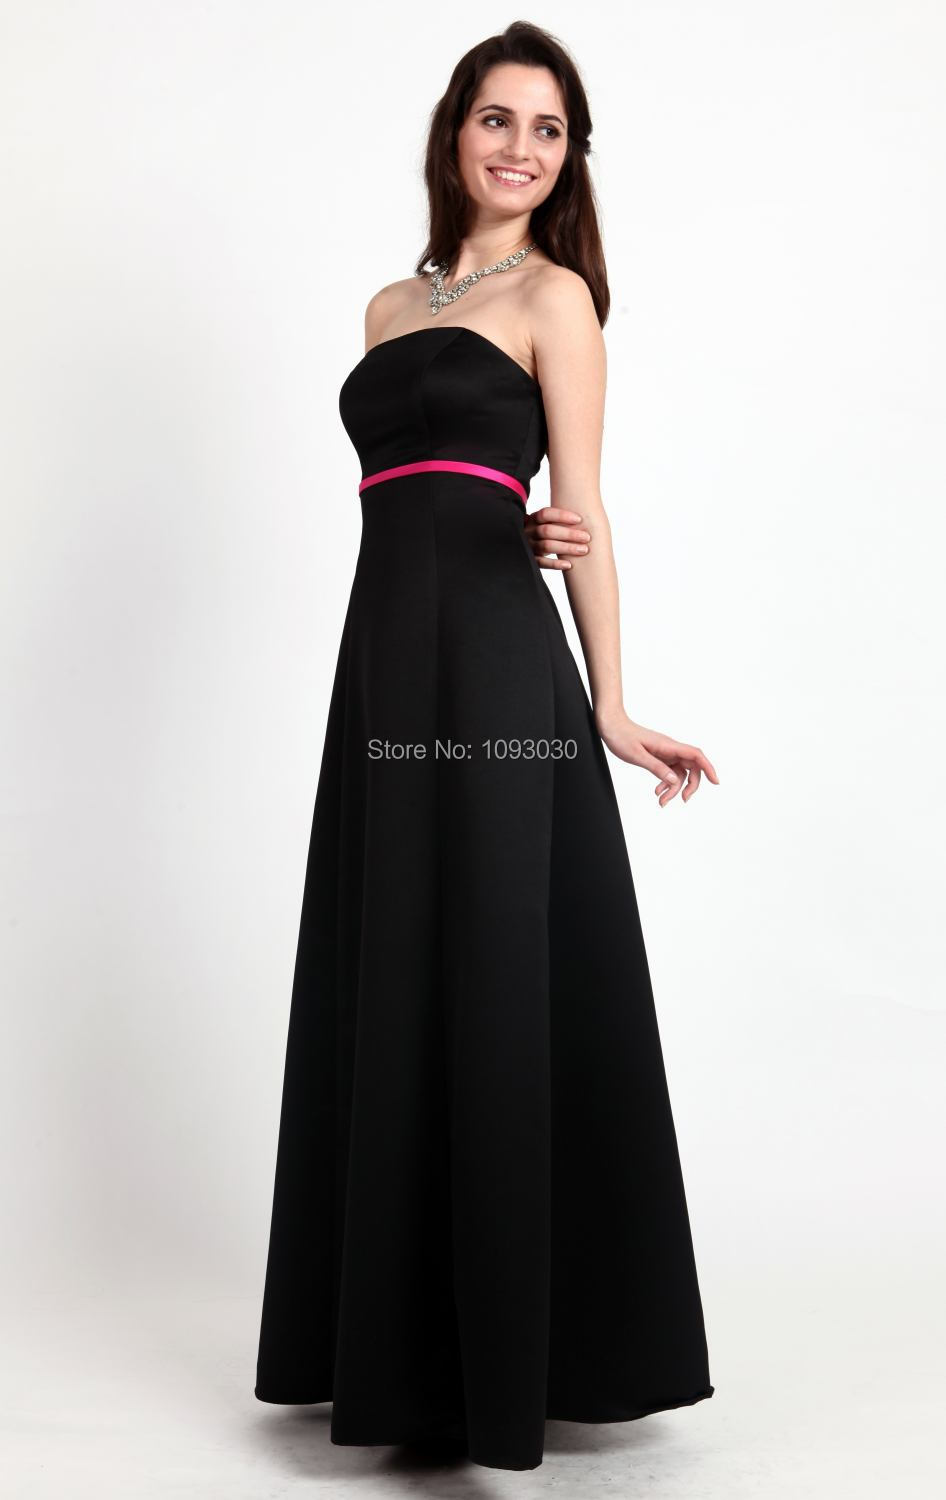 Black strapless long bridesmaid dress with pink belt 2017 a line black strapless long bridesmaid dress with pink belt 2015 a line dresses vestidos de madrinha fast shipping cheap bd089 ombrellifo Image collections